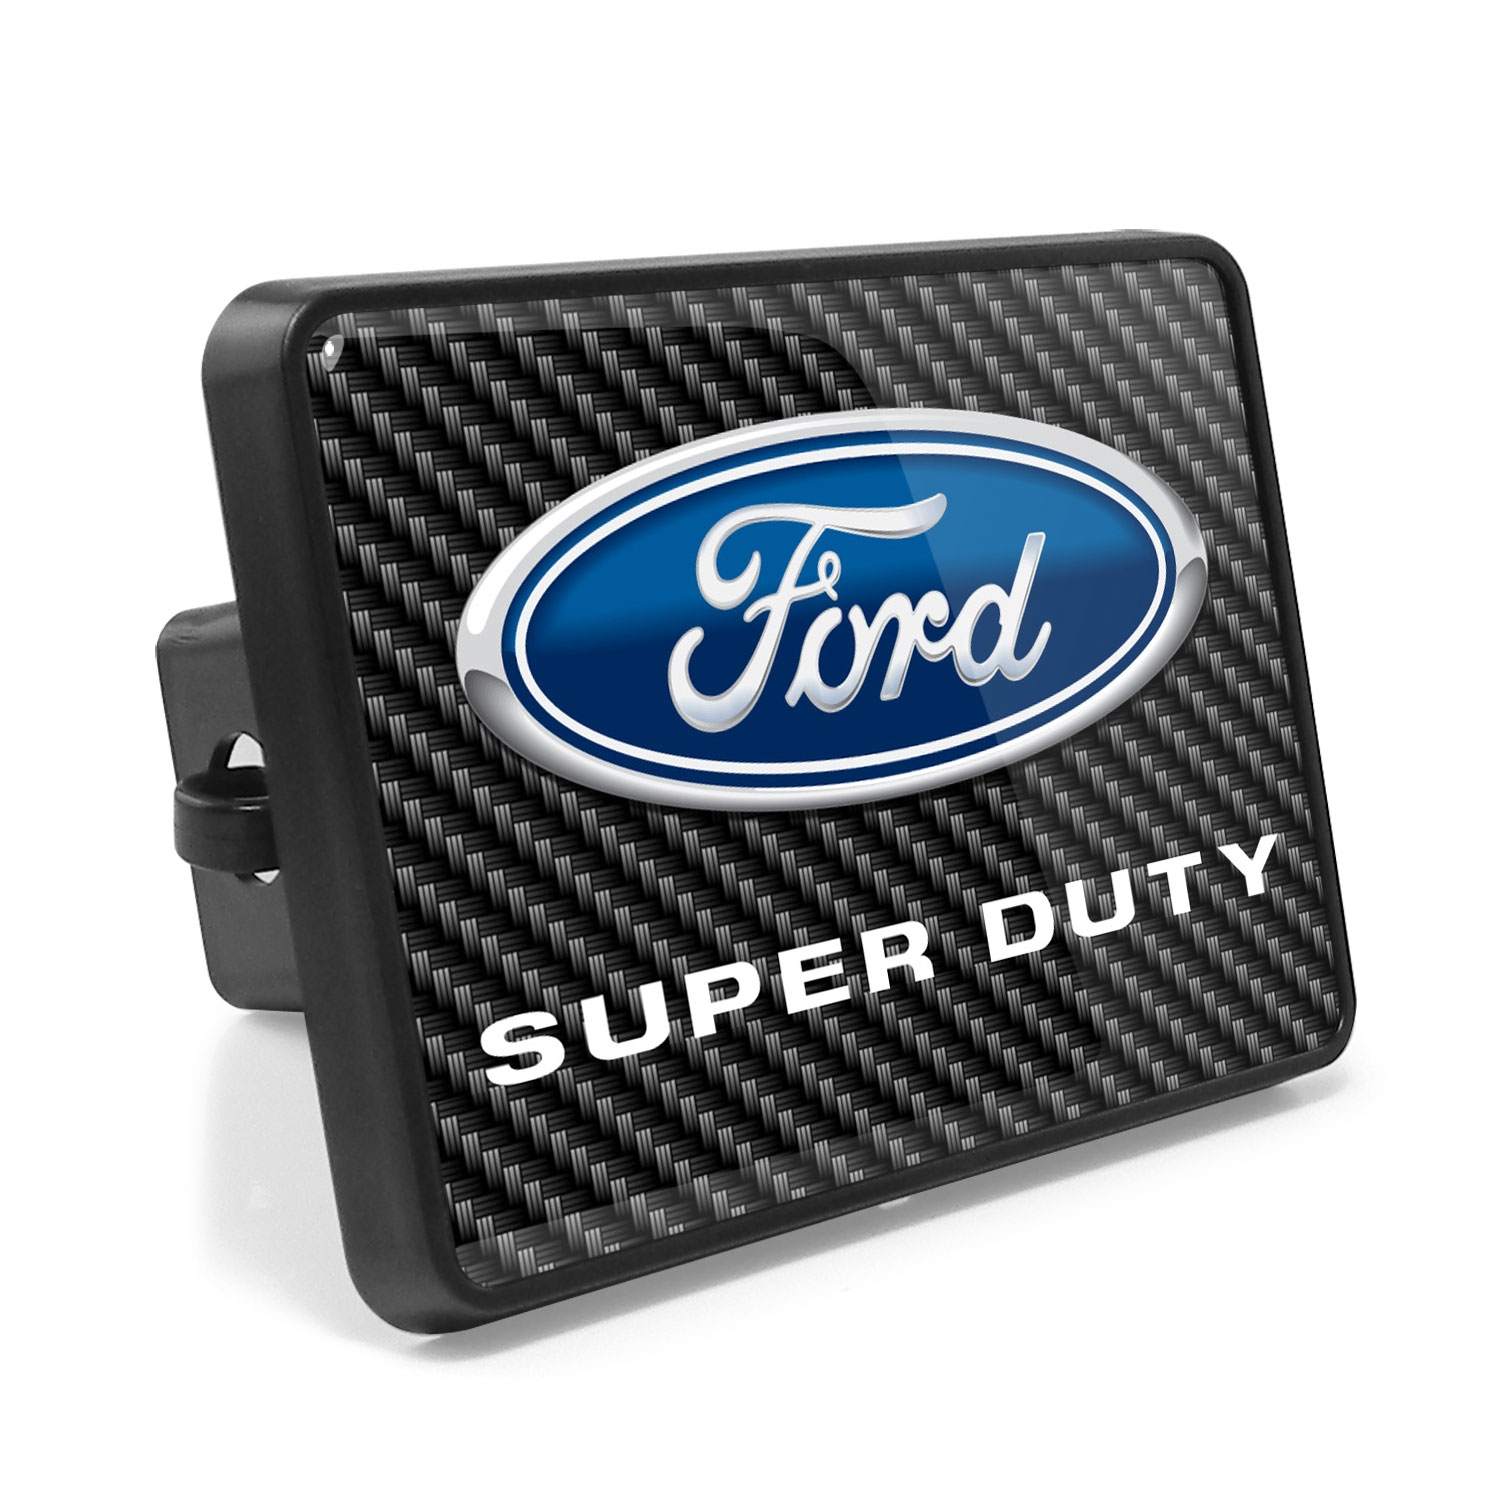 Ford F-Series Super Duty 2011 to 2016 Carbon Fiber Look UV Graphic Metal Plate on ABS Plastic 2 inch Tow Hitch Cover